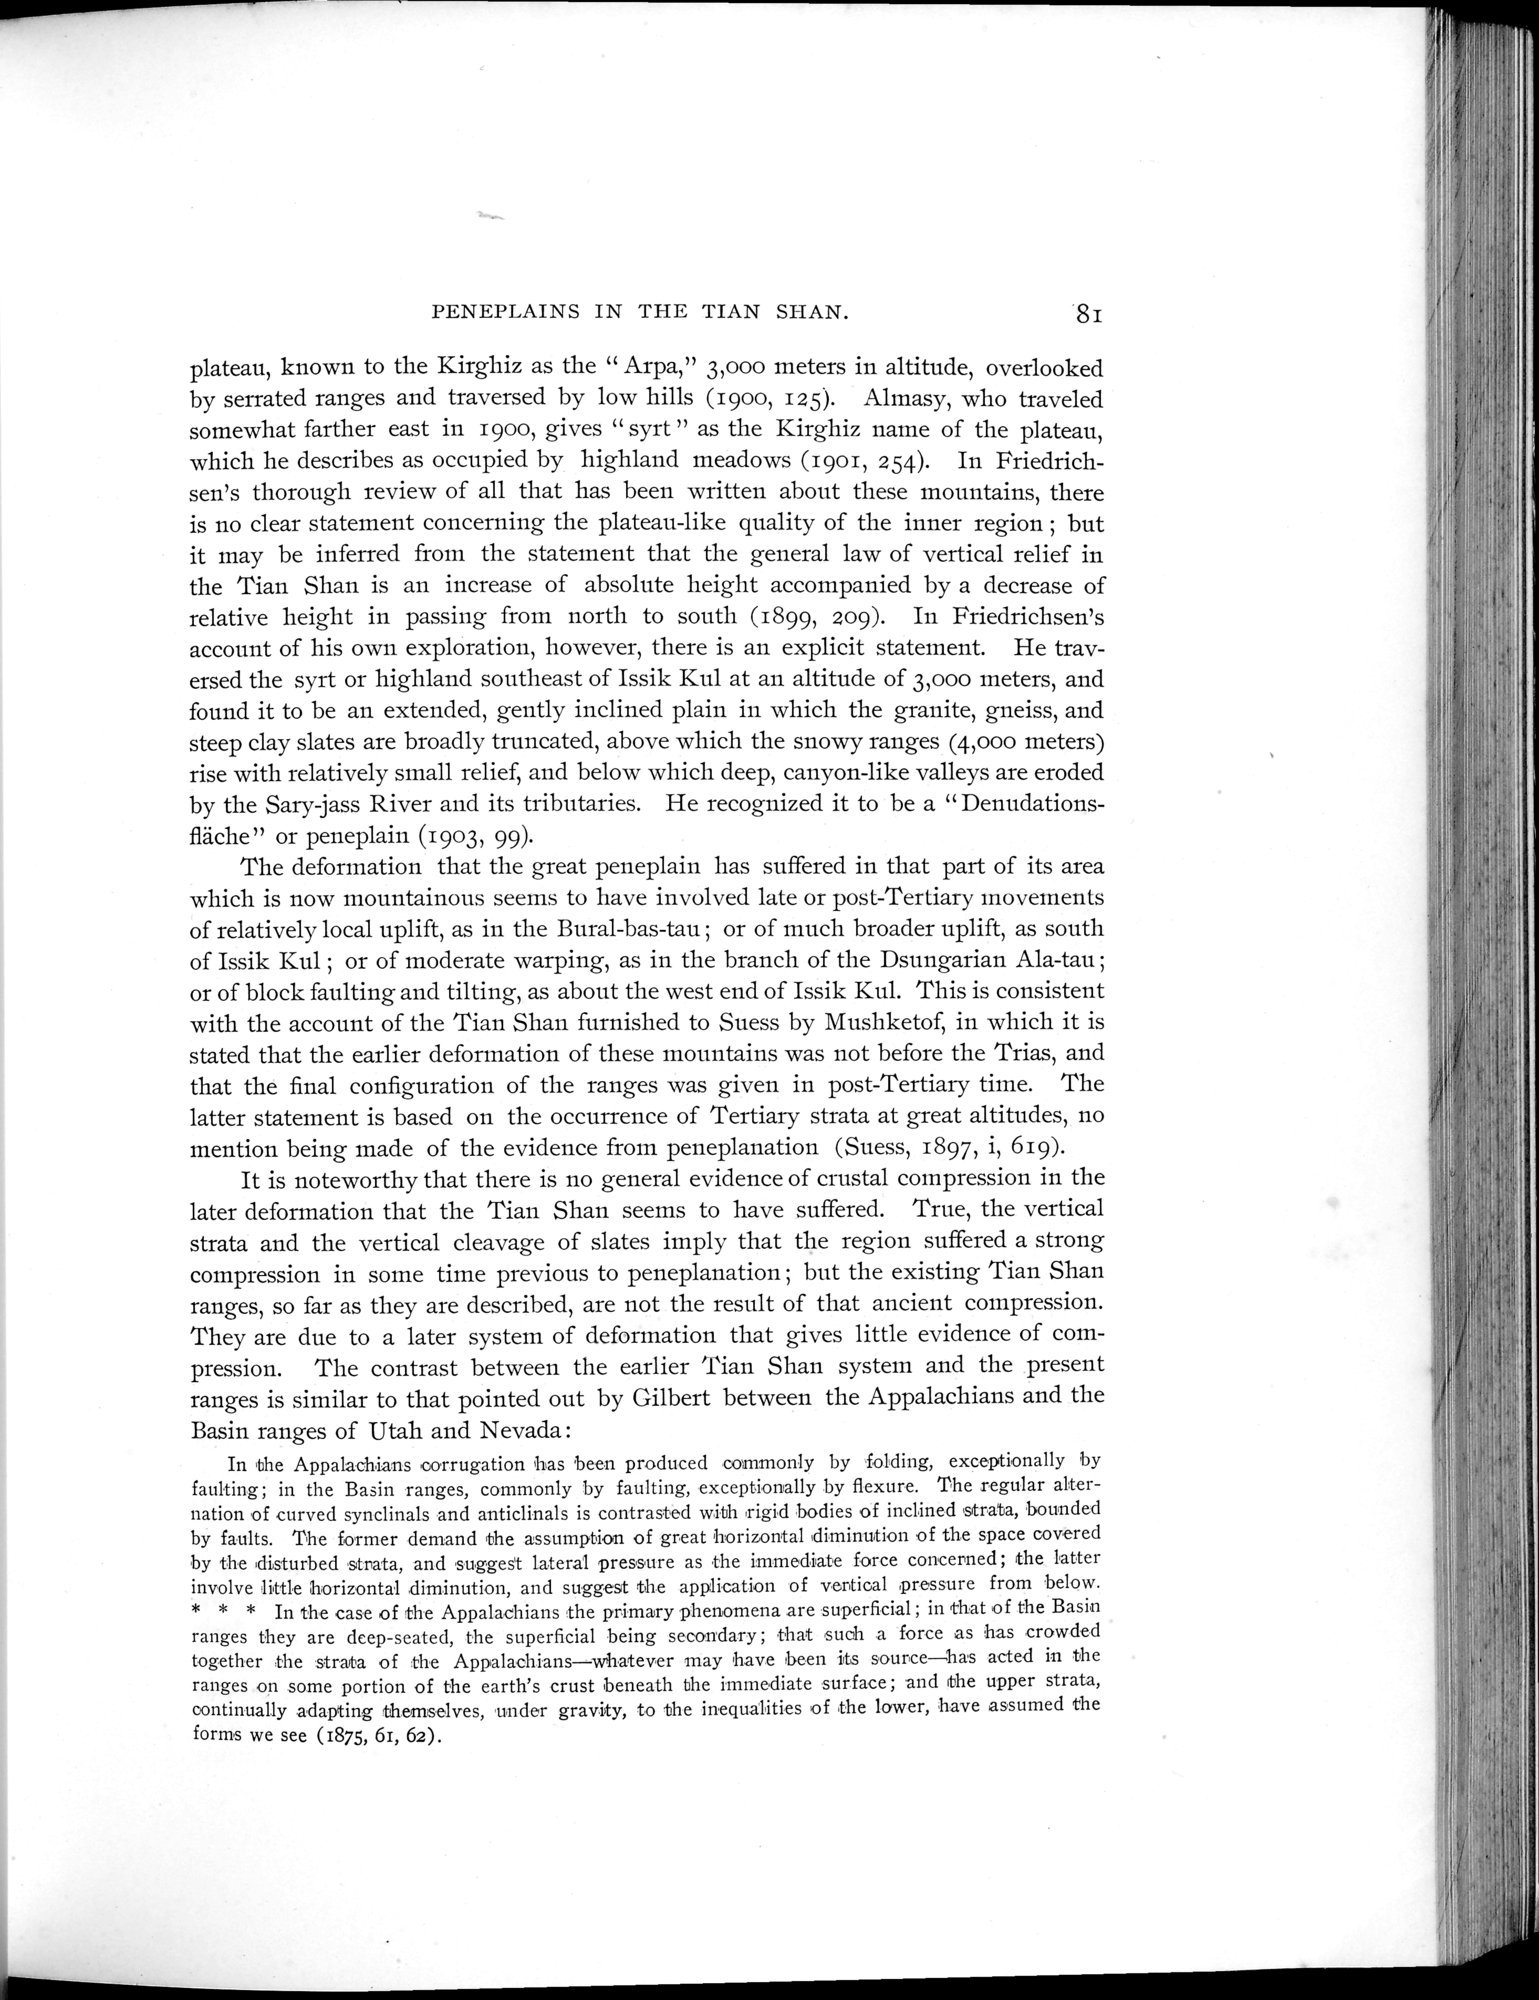 Explorations in Turkestan 1903 : vol.1 / Page 105 (Grayscale High Resolution Image)